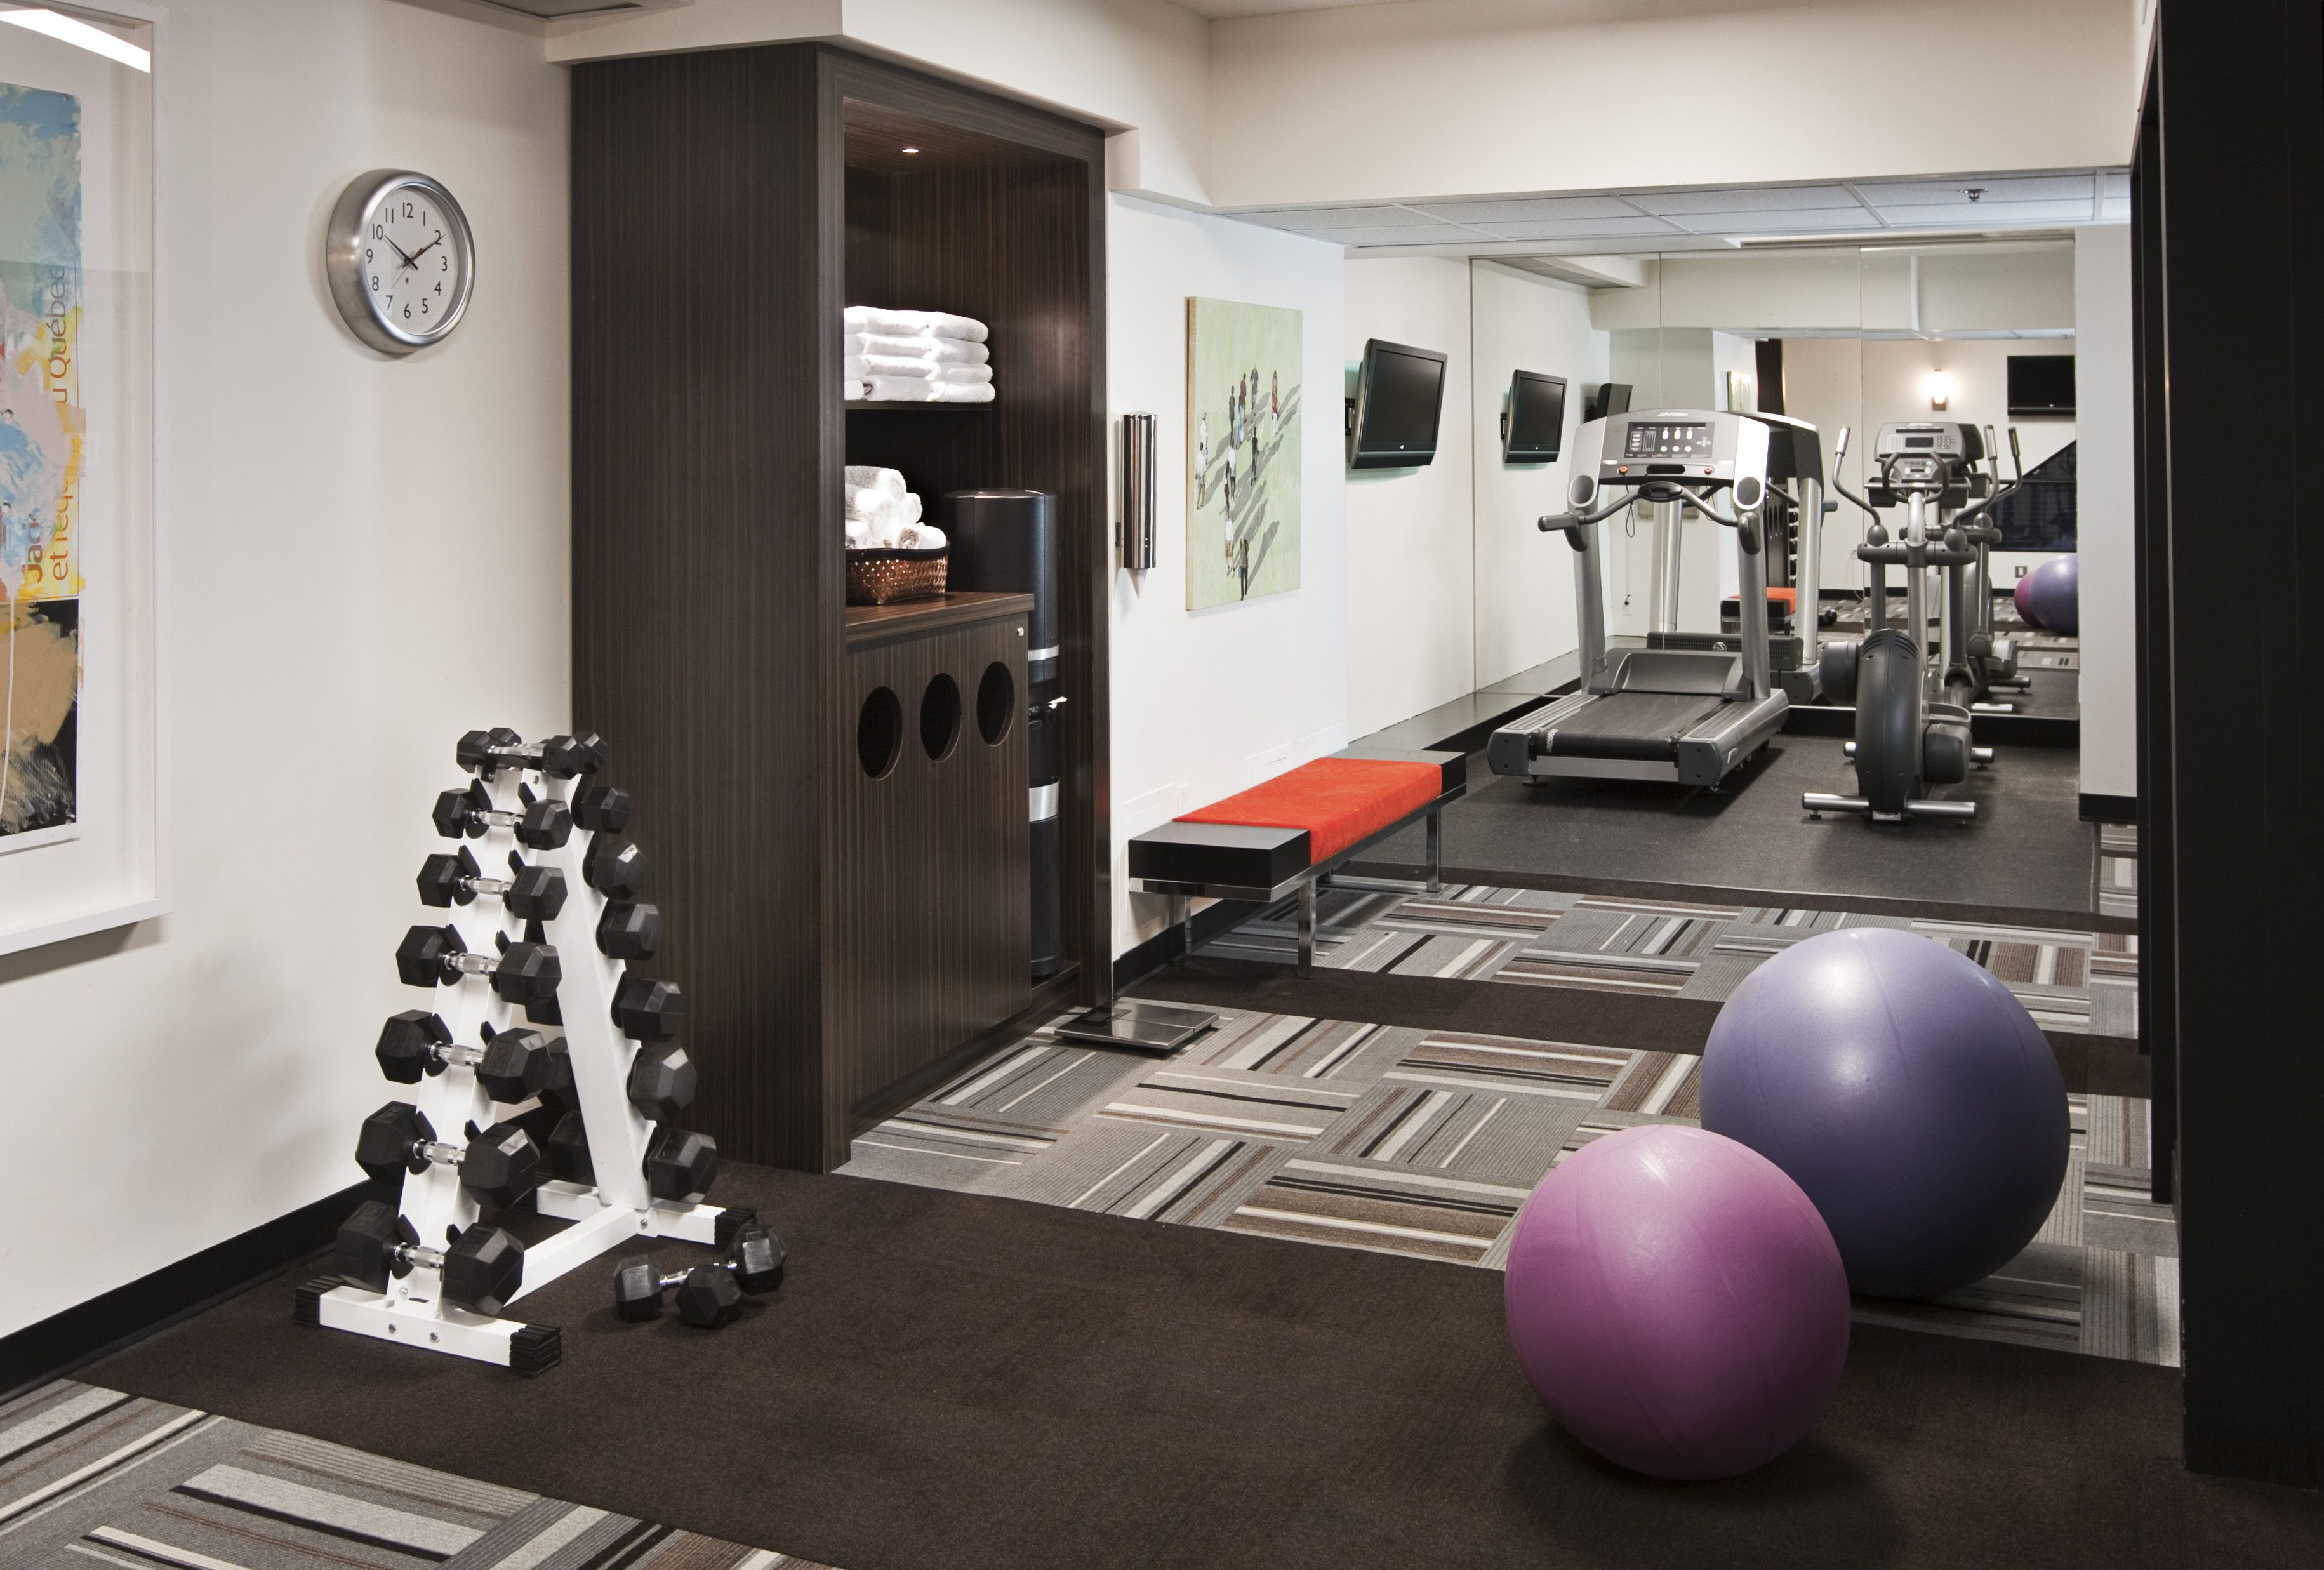 9377522c6f281346bb5a52c18bd67125 - 31+ Small Home Gym Room Design Images